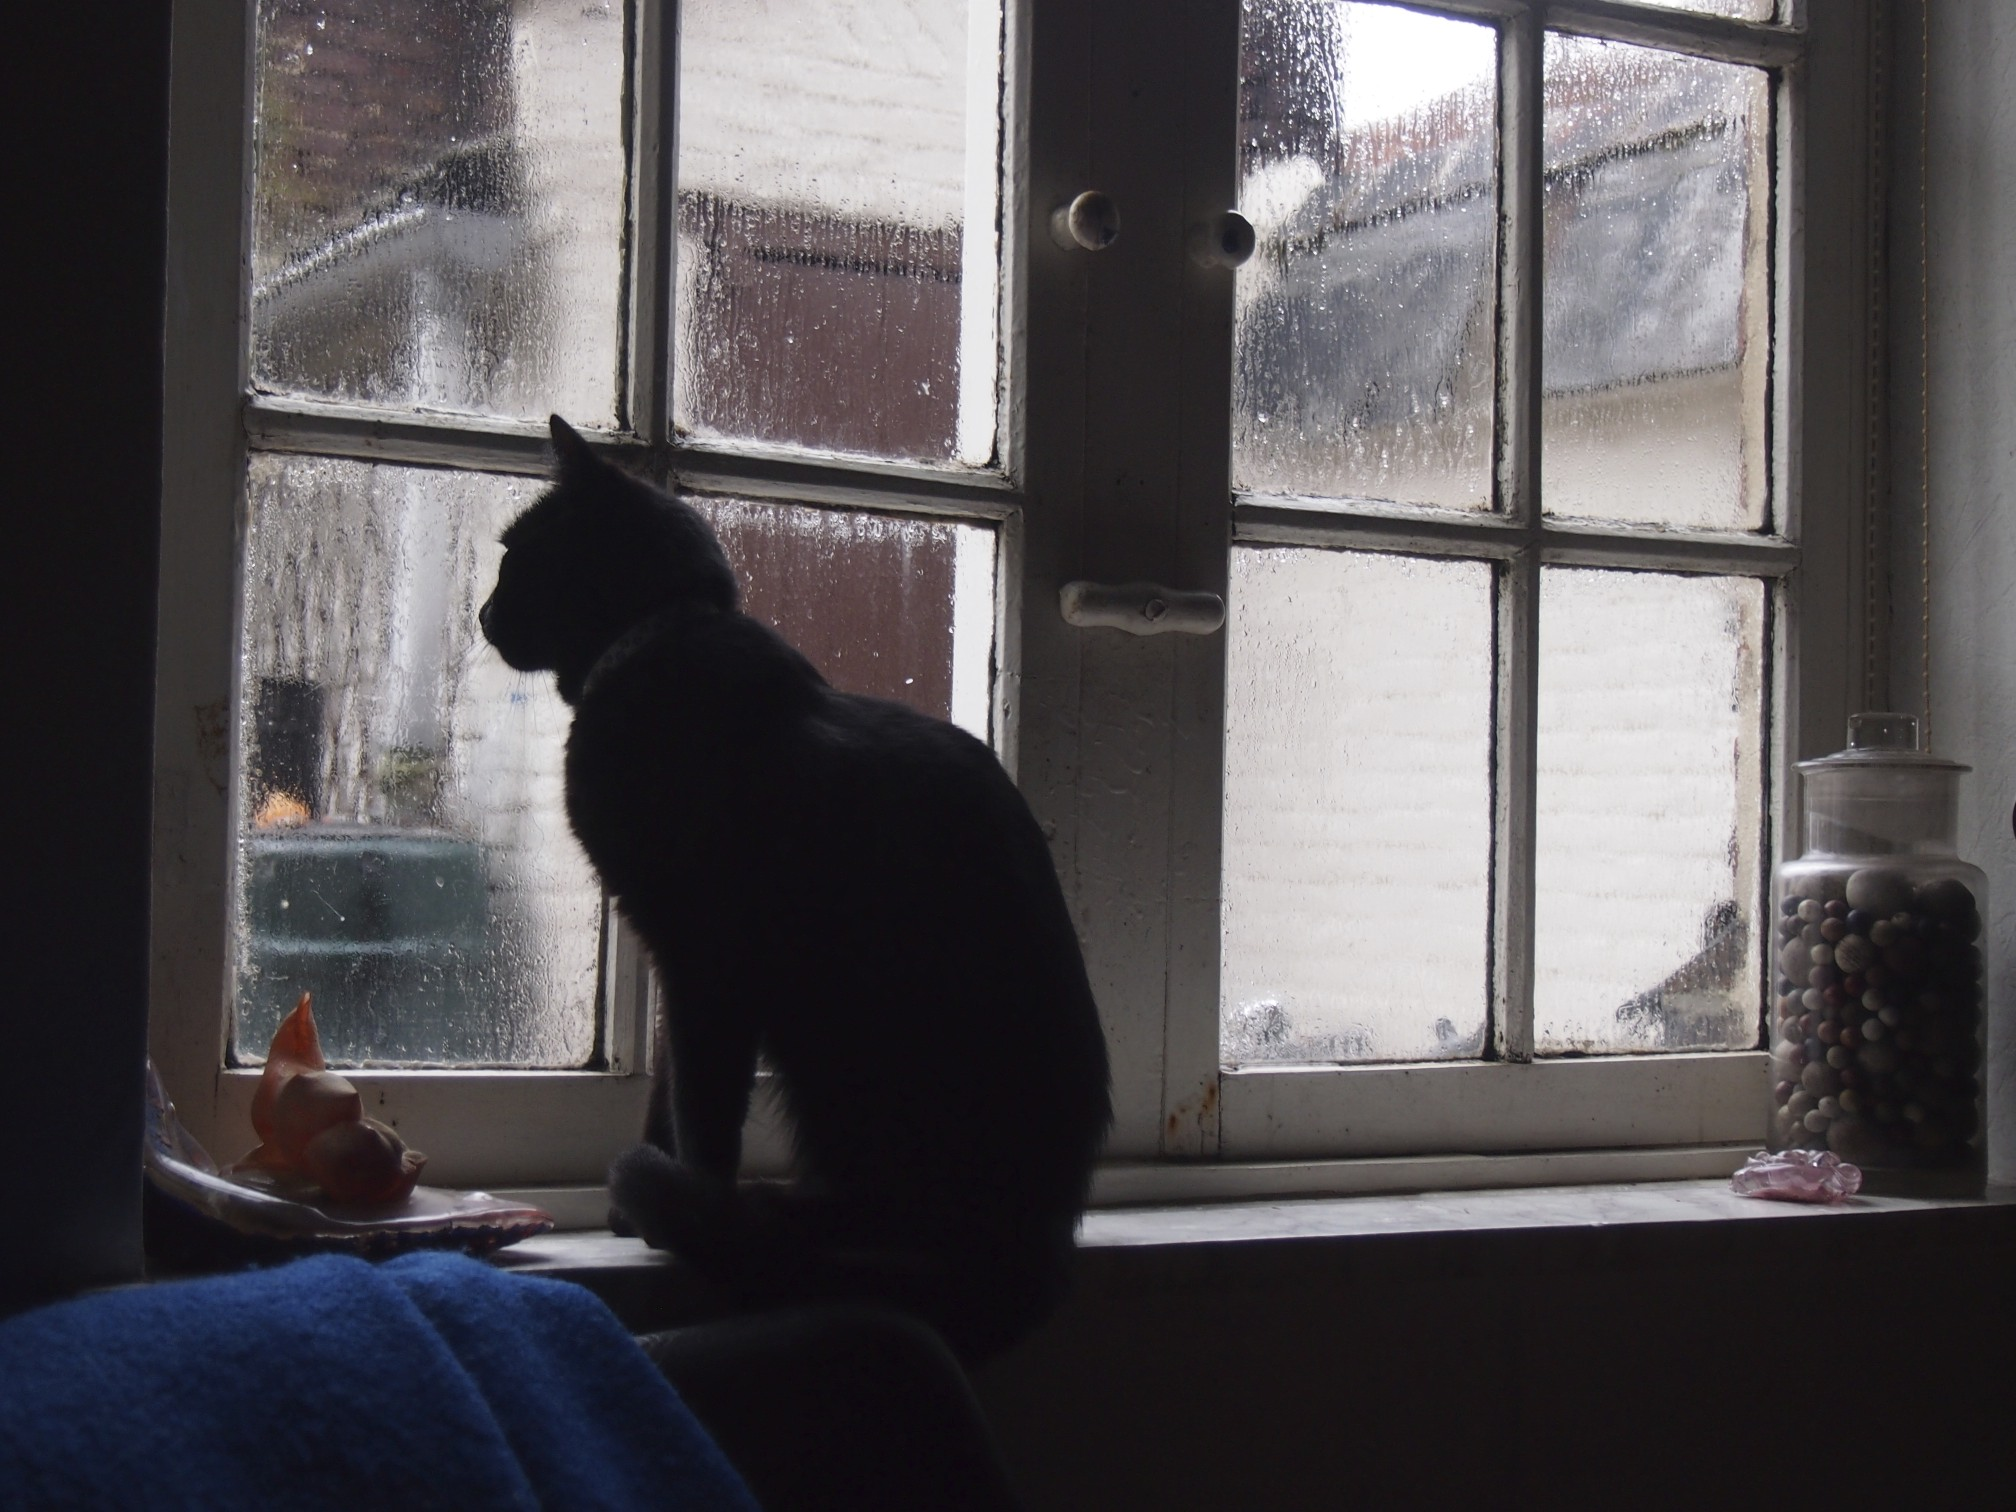 A cat by the window photo